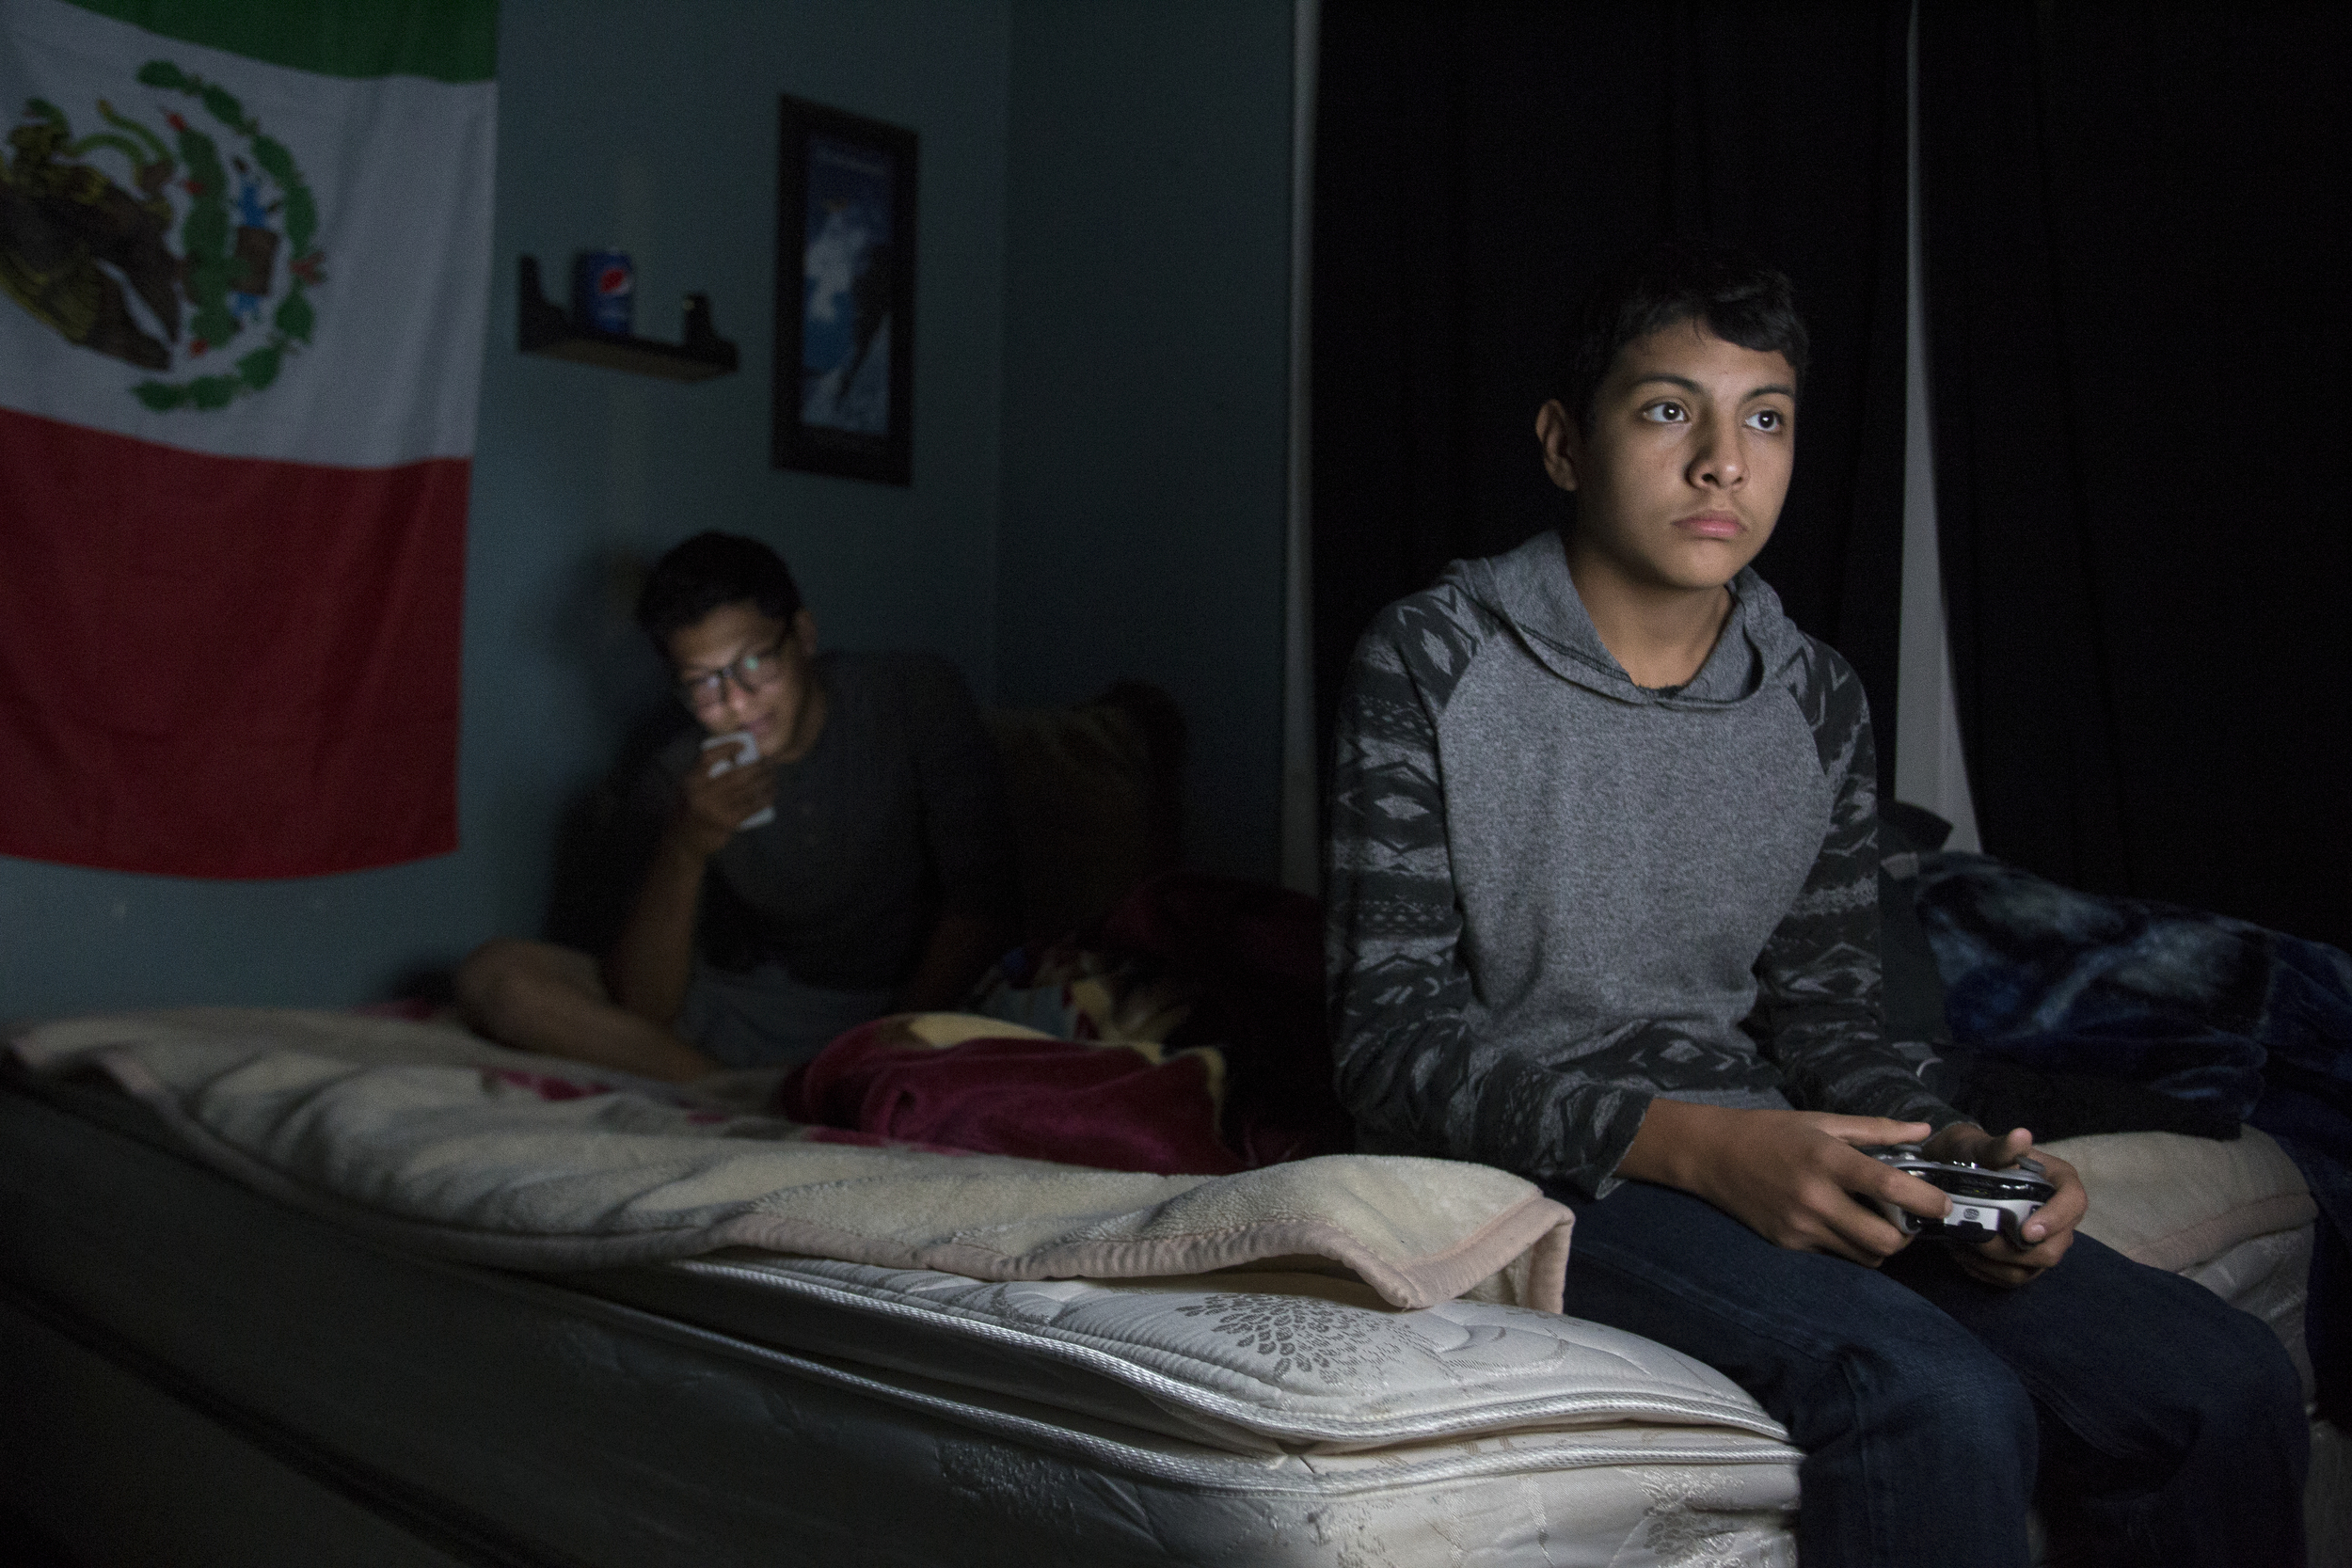 Ignacio Jurado, 17, left, and his brother Leo, 13, right, play video games and share YouTube videos with each other in the camps at Uncle John's Cider Mill. The brothers have a very close relationship and spend a lot of time together.